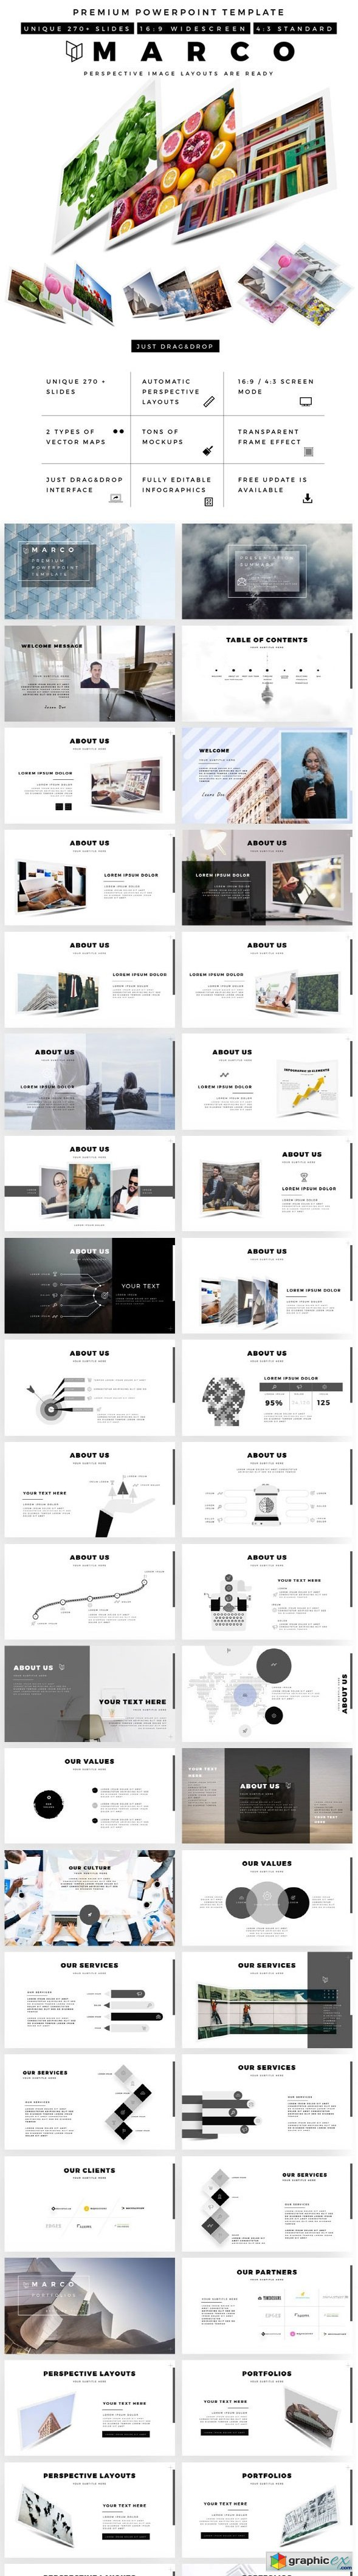 Marco Premium PowerPoint Template